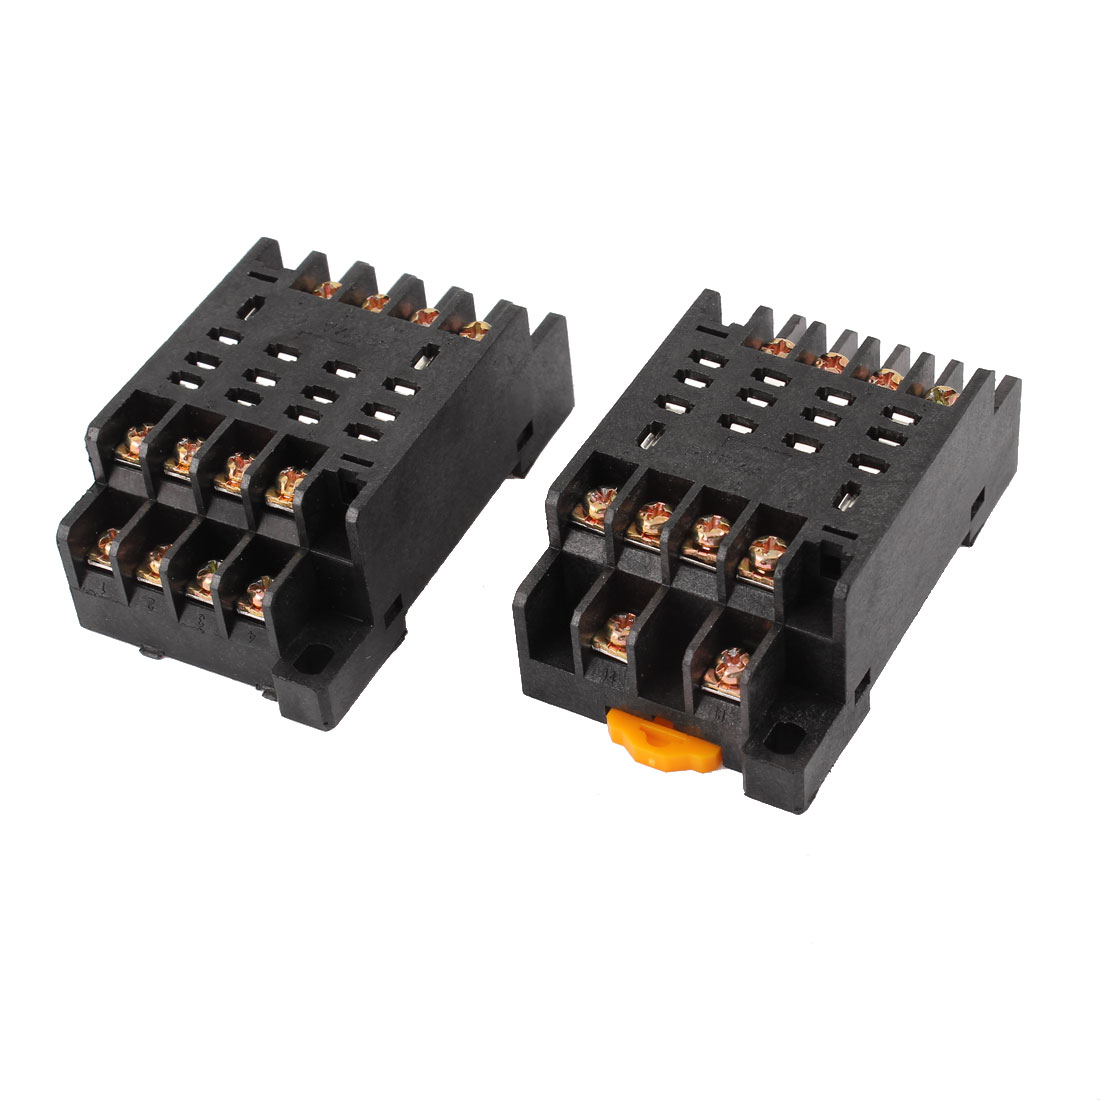 PTF14A 14 Pins 14P DIN Rail Mount Relay Socket Base 2pcs for HH64P